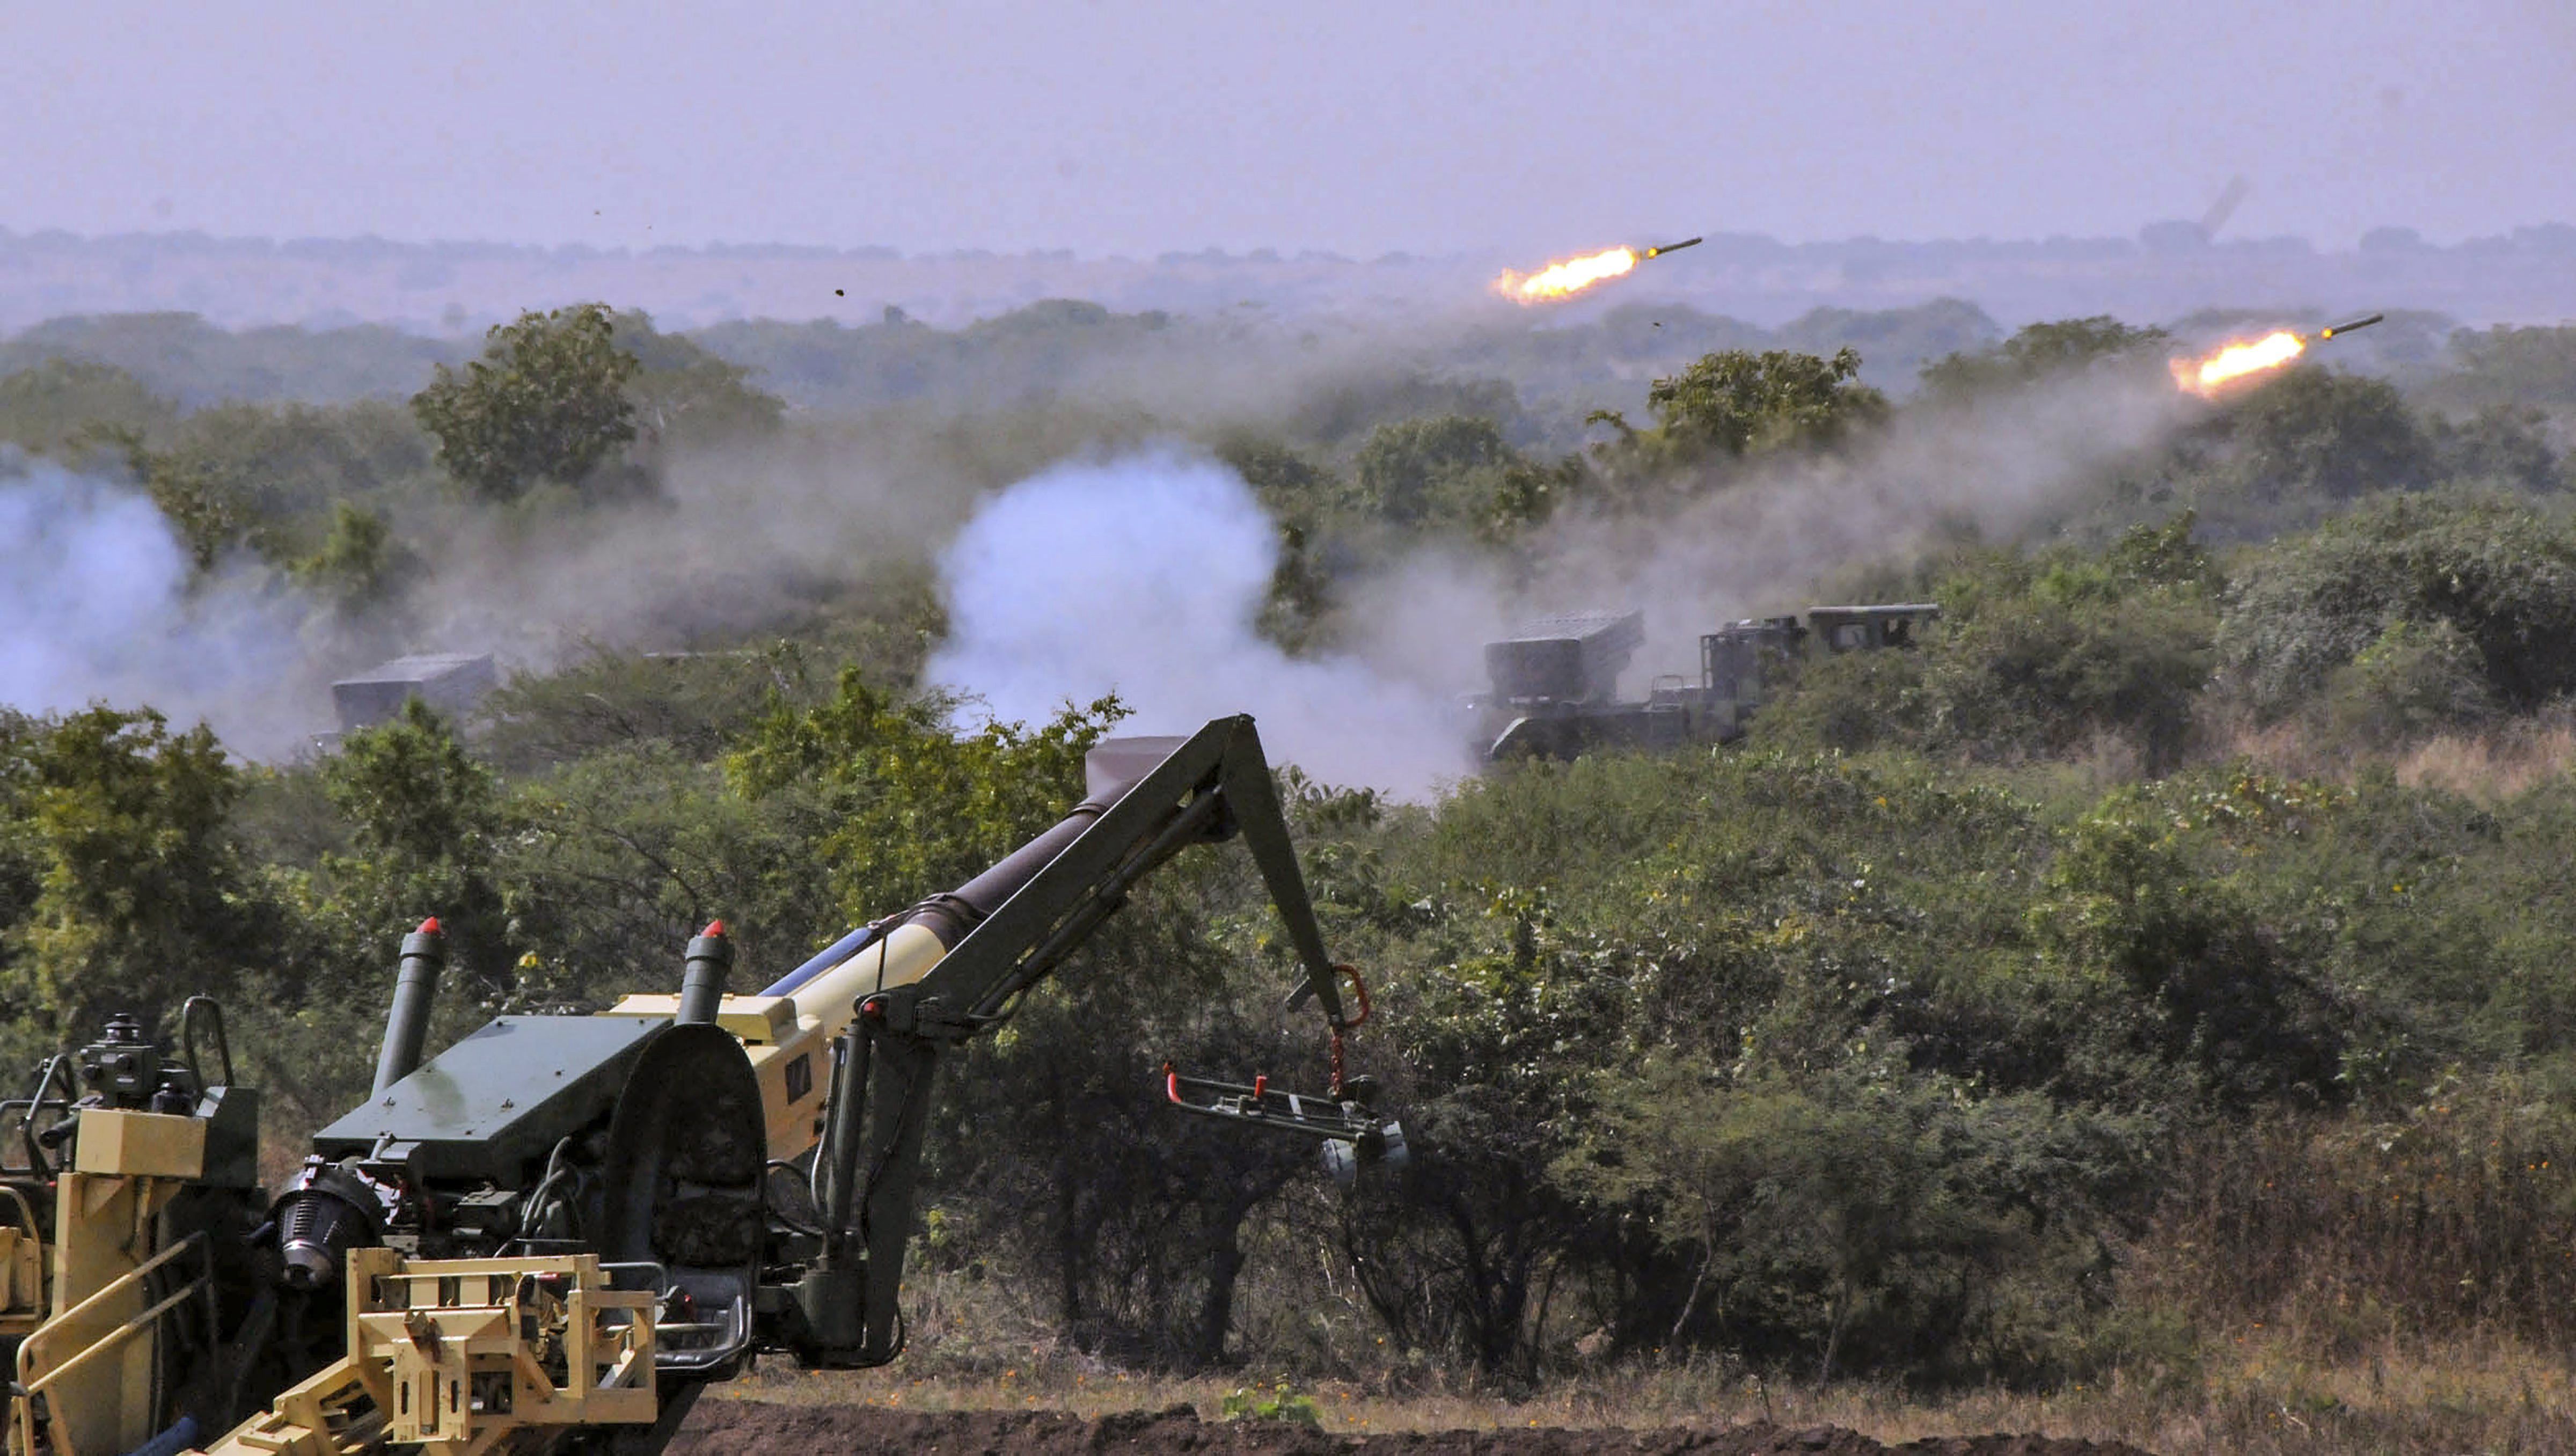 M777 Howitzer gun fires in the air at the formal induction of the major artillery gun systems including the K-9 Vajra, a self-propelled artillery gun and Composite Gun Towing Vehicle during a ceremony at Deolali artillery centre, in Nashik district - PTI